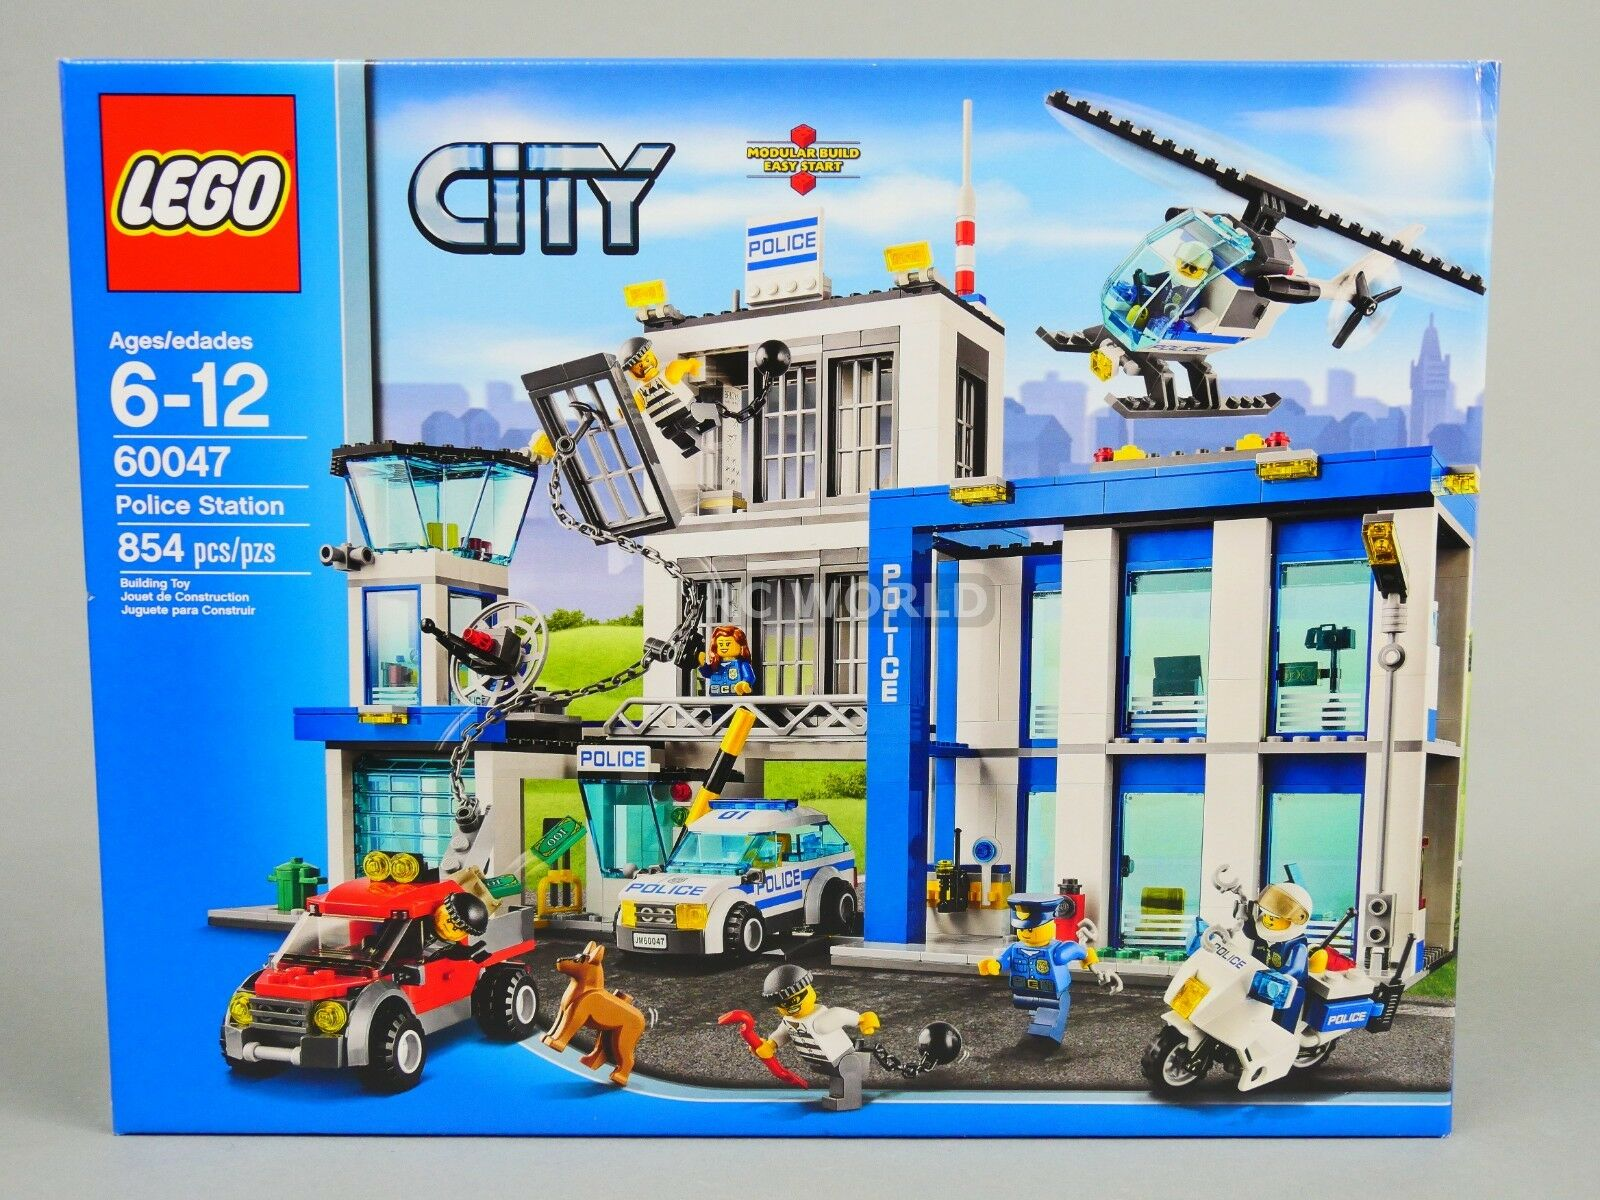 Lego city police station 60047 (854 pcs)   oobt